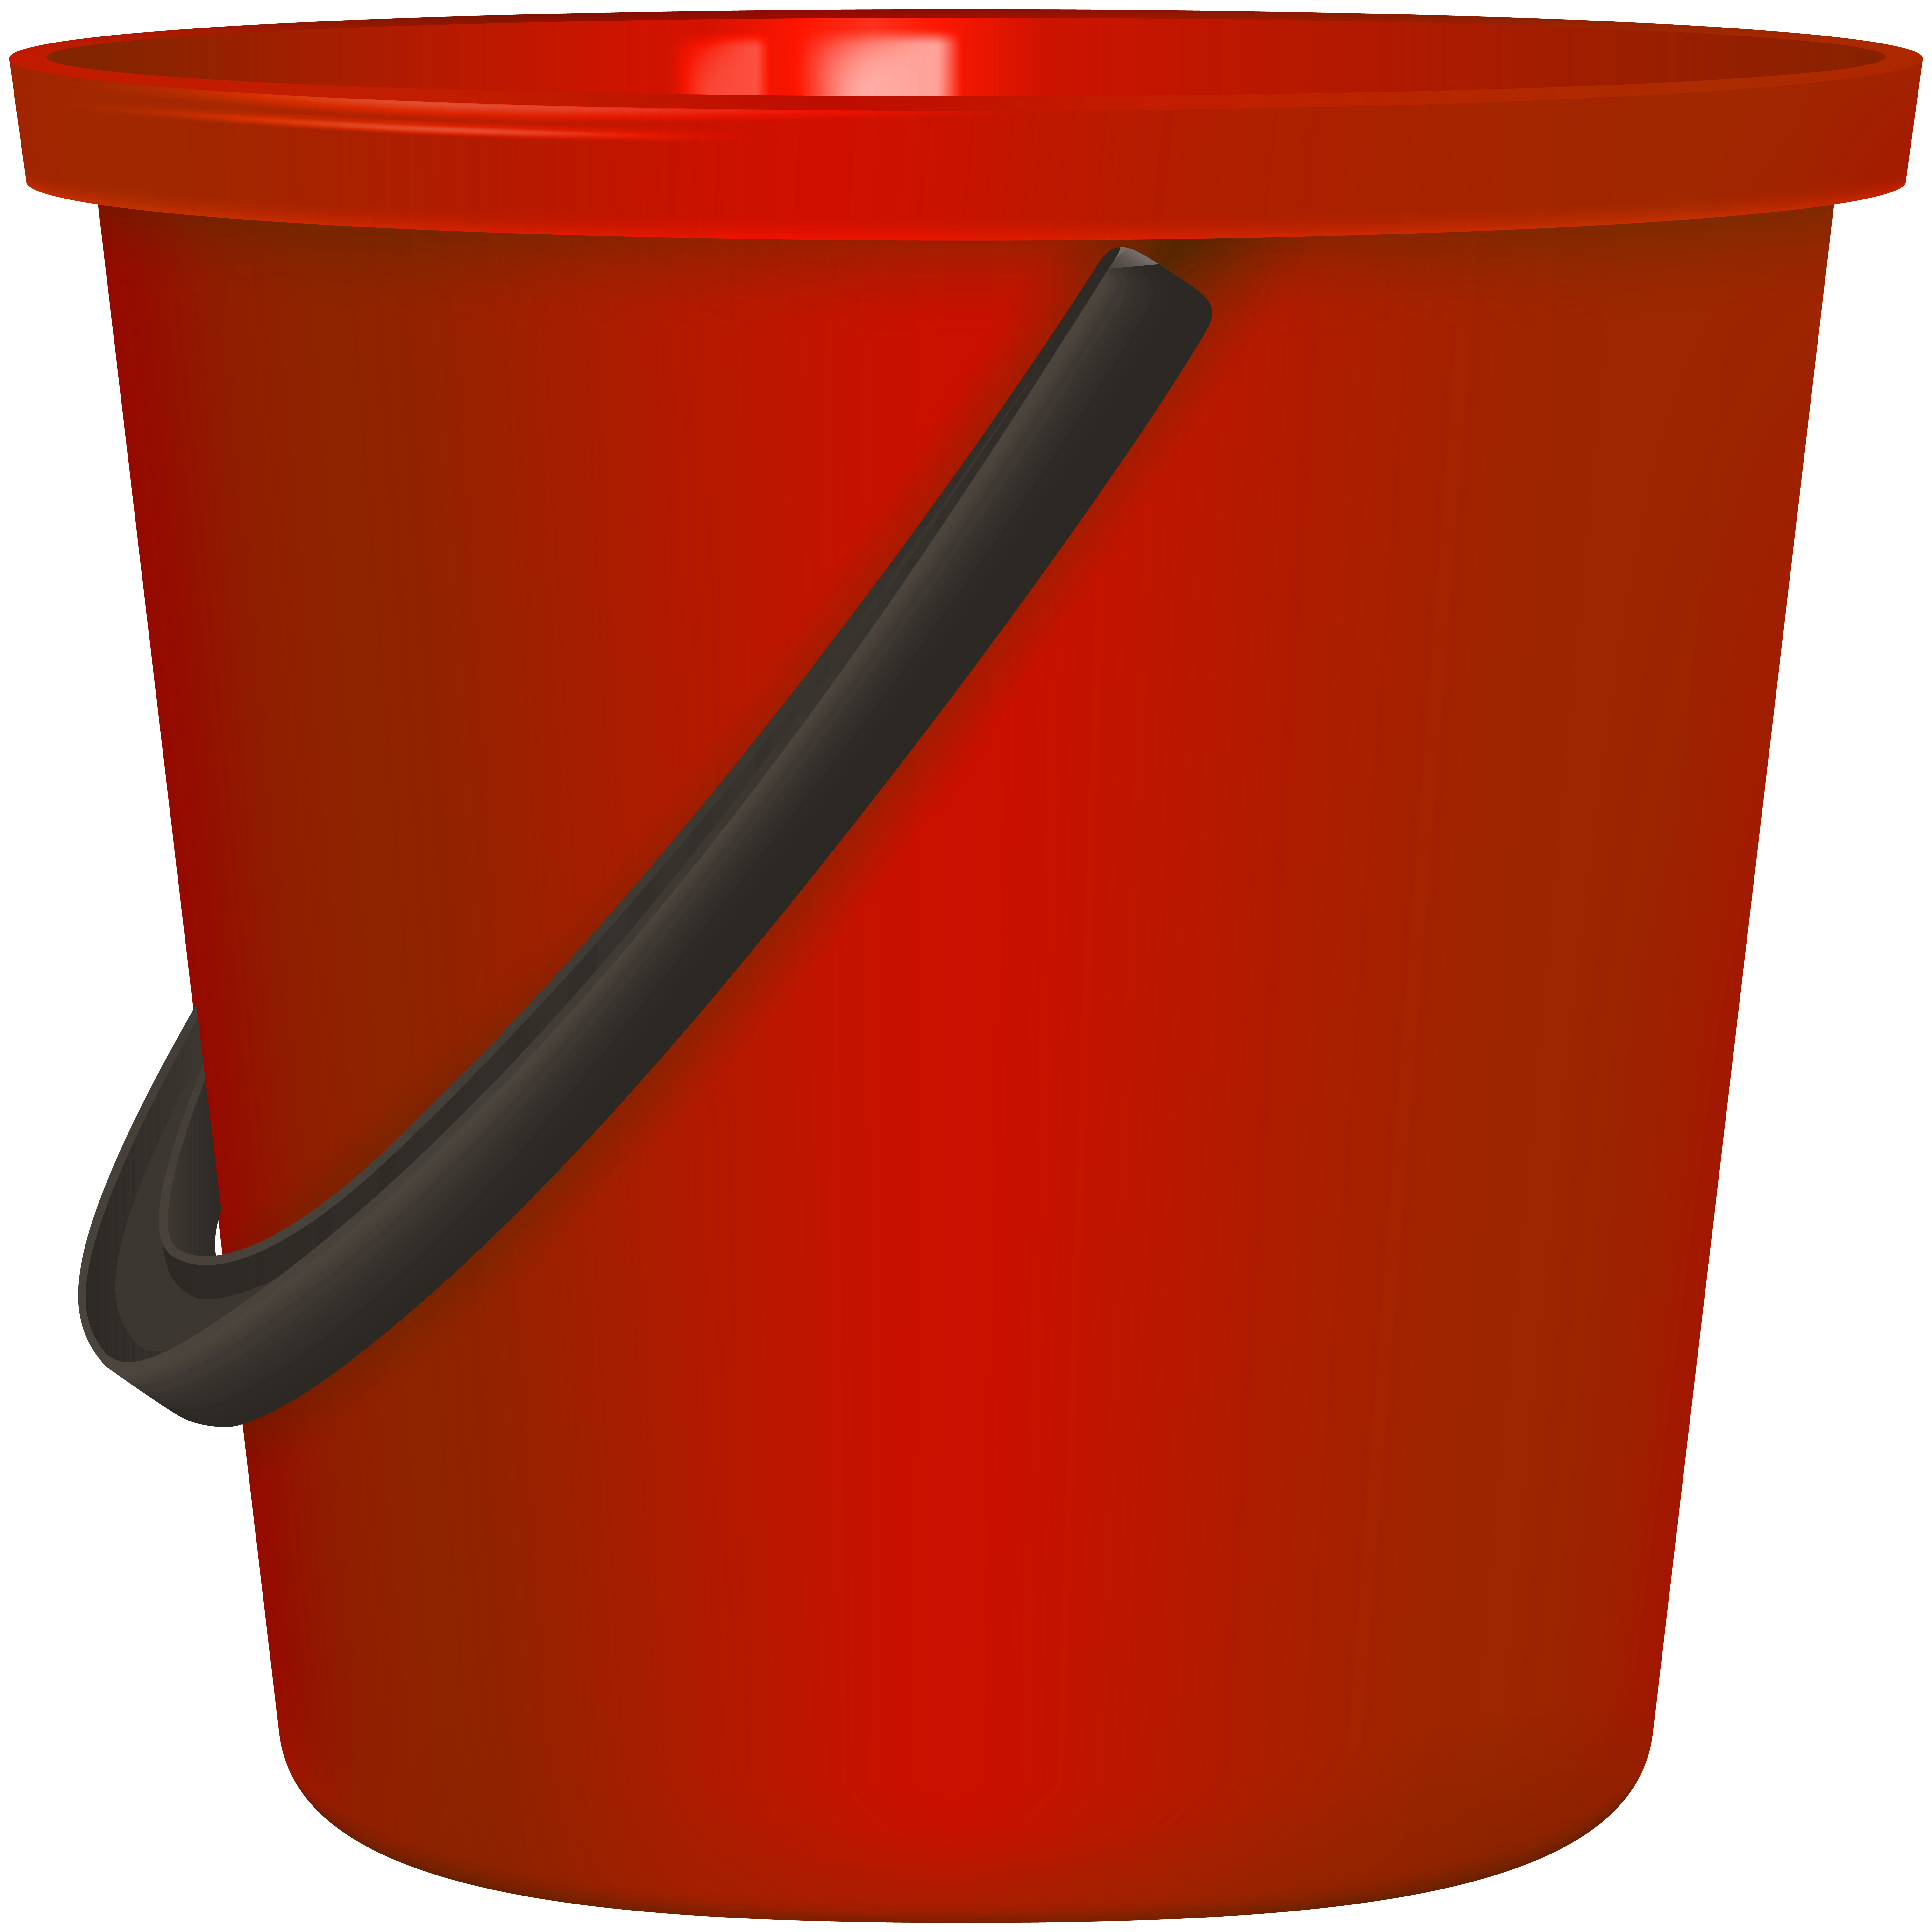 Bucket clipart. Red png clip art